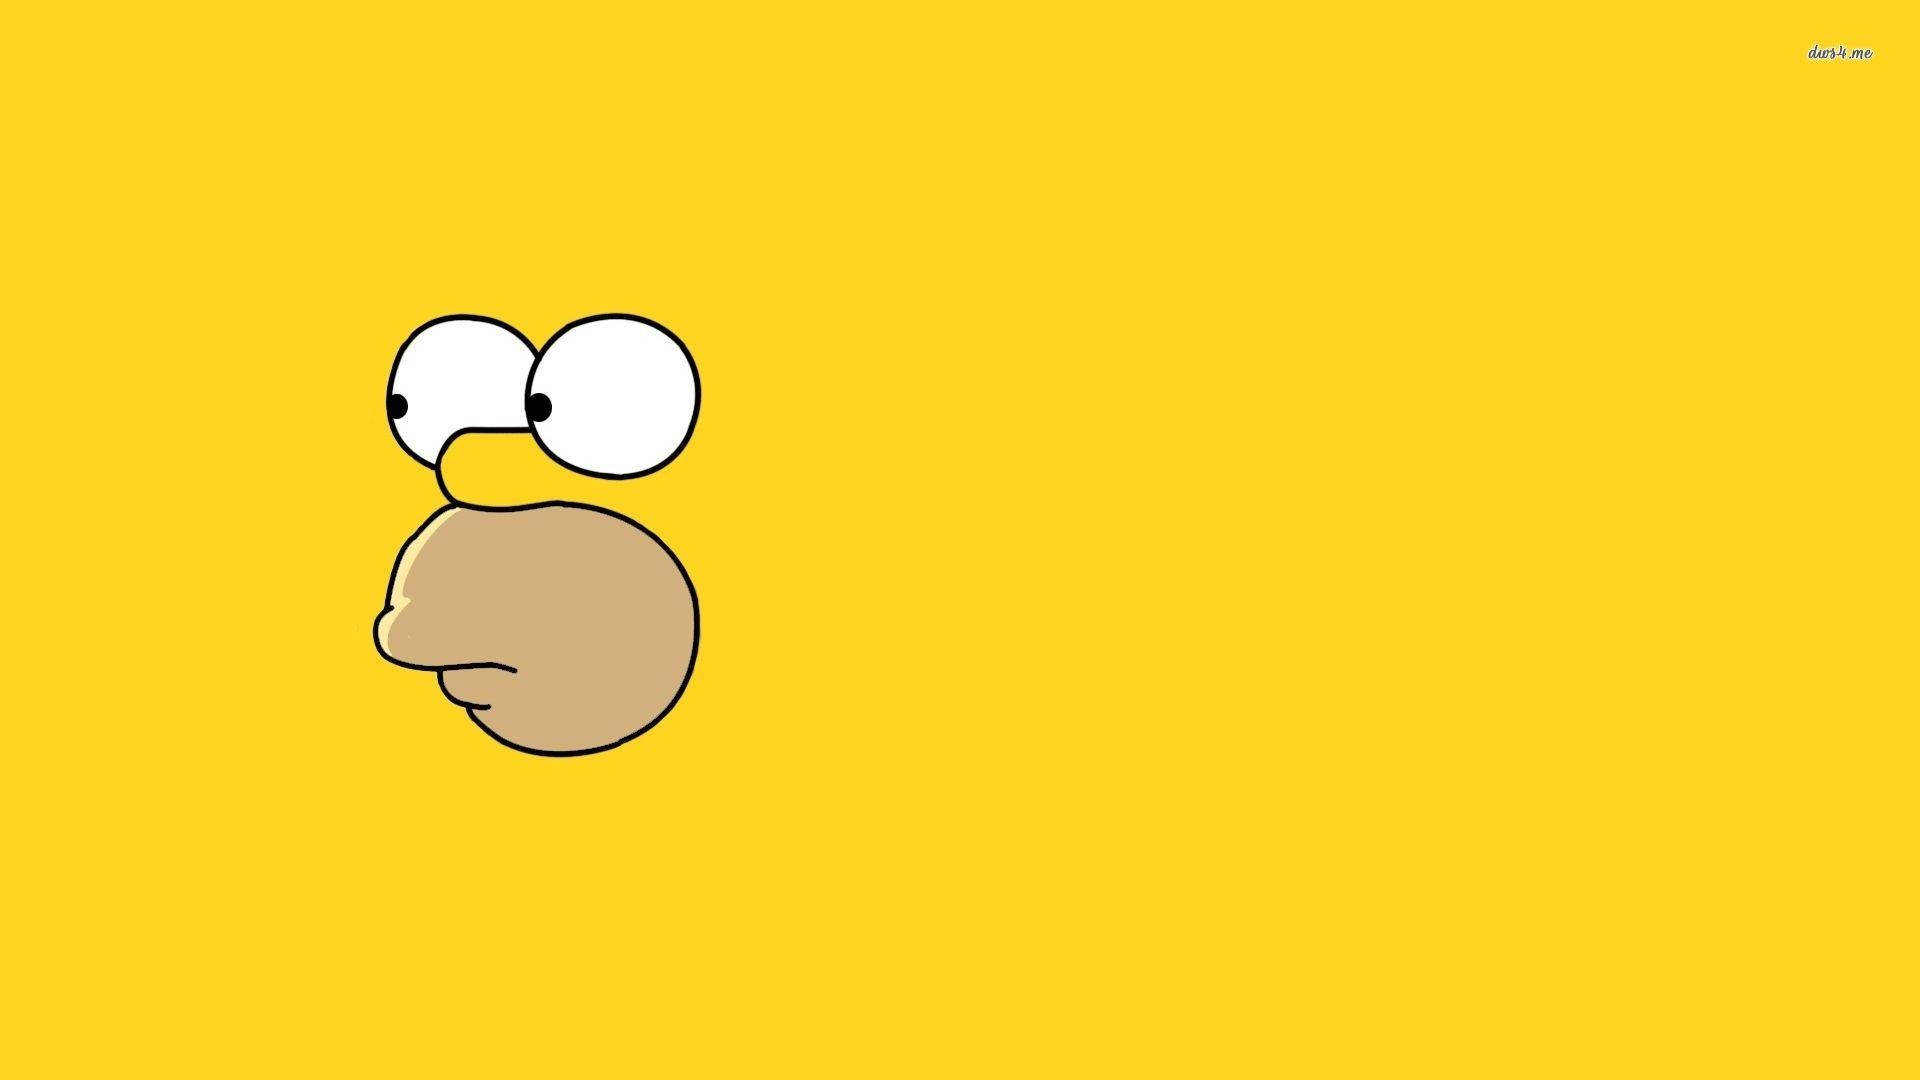 bart simpson hd wallpaper (74+ images)